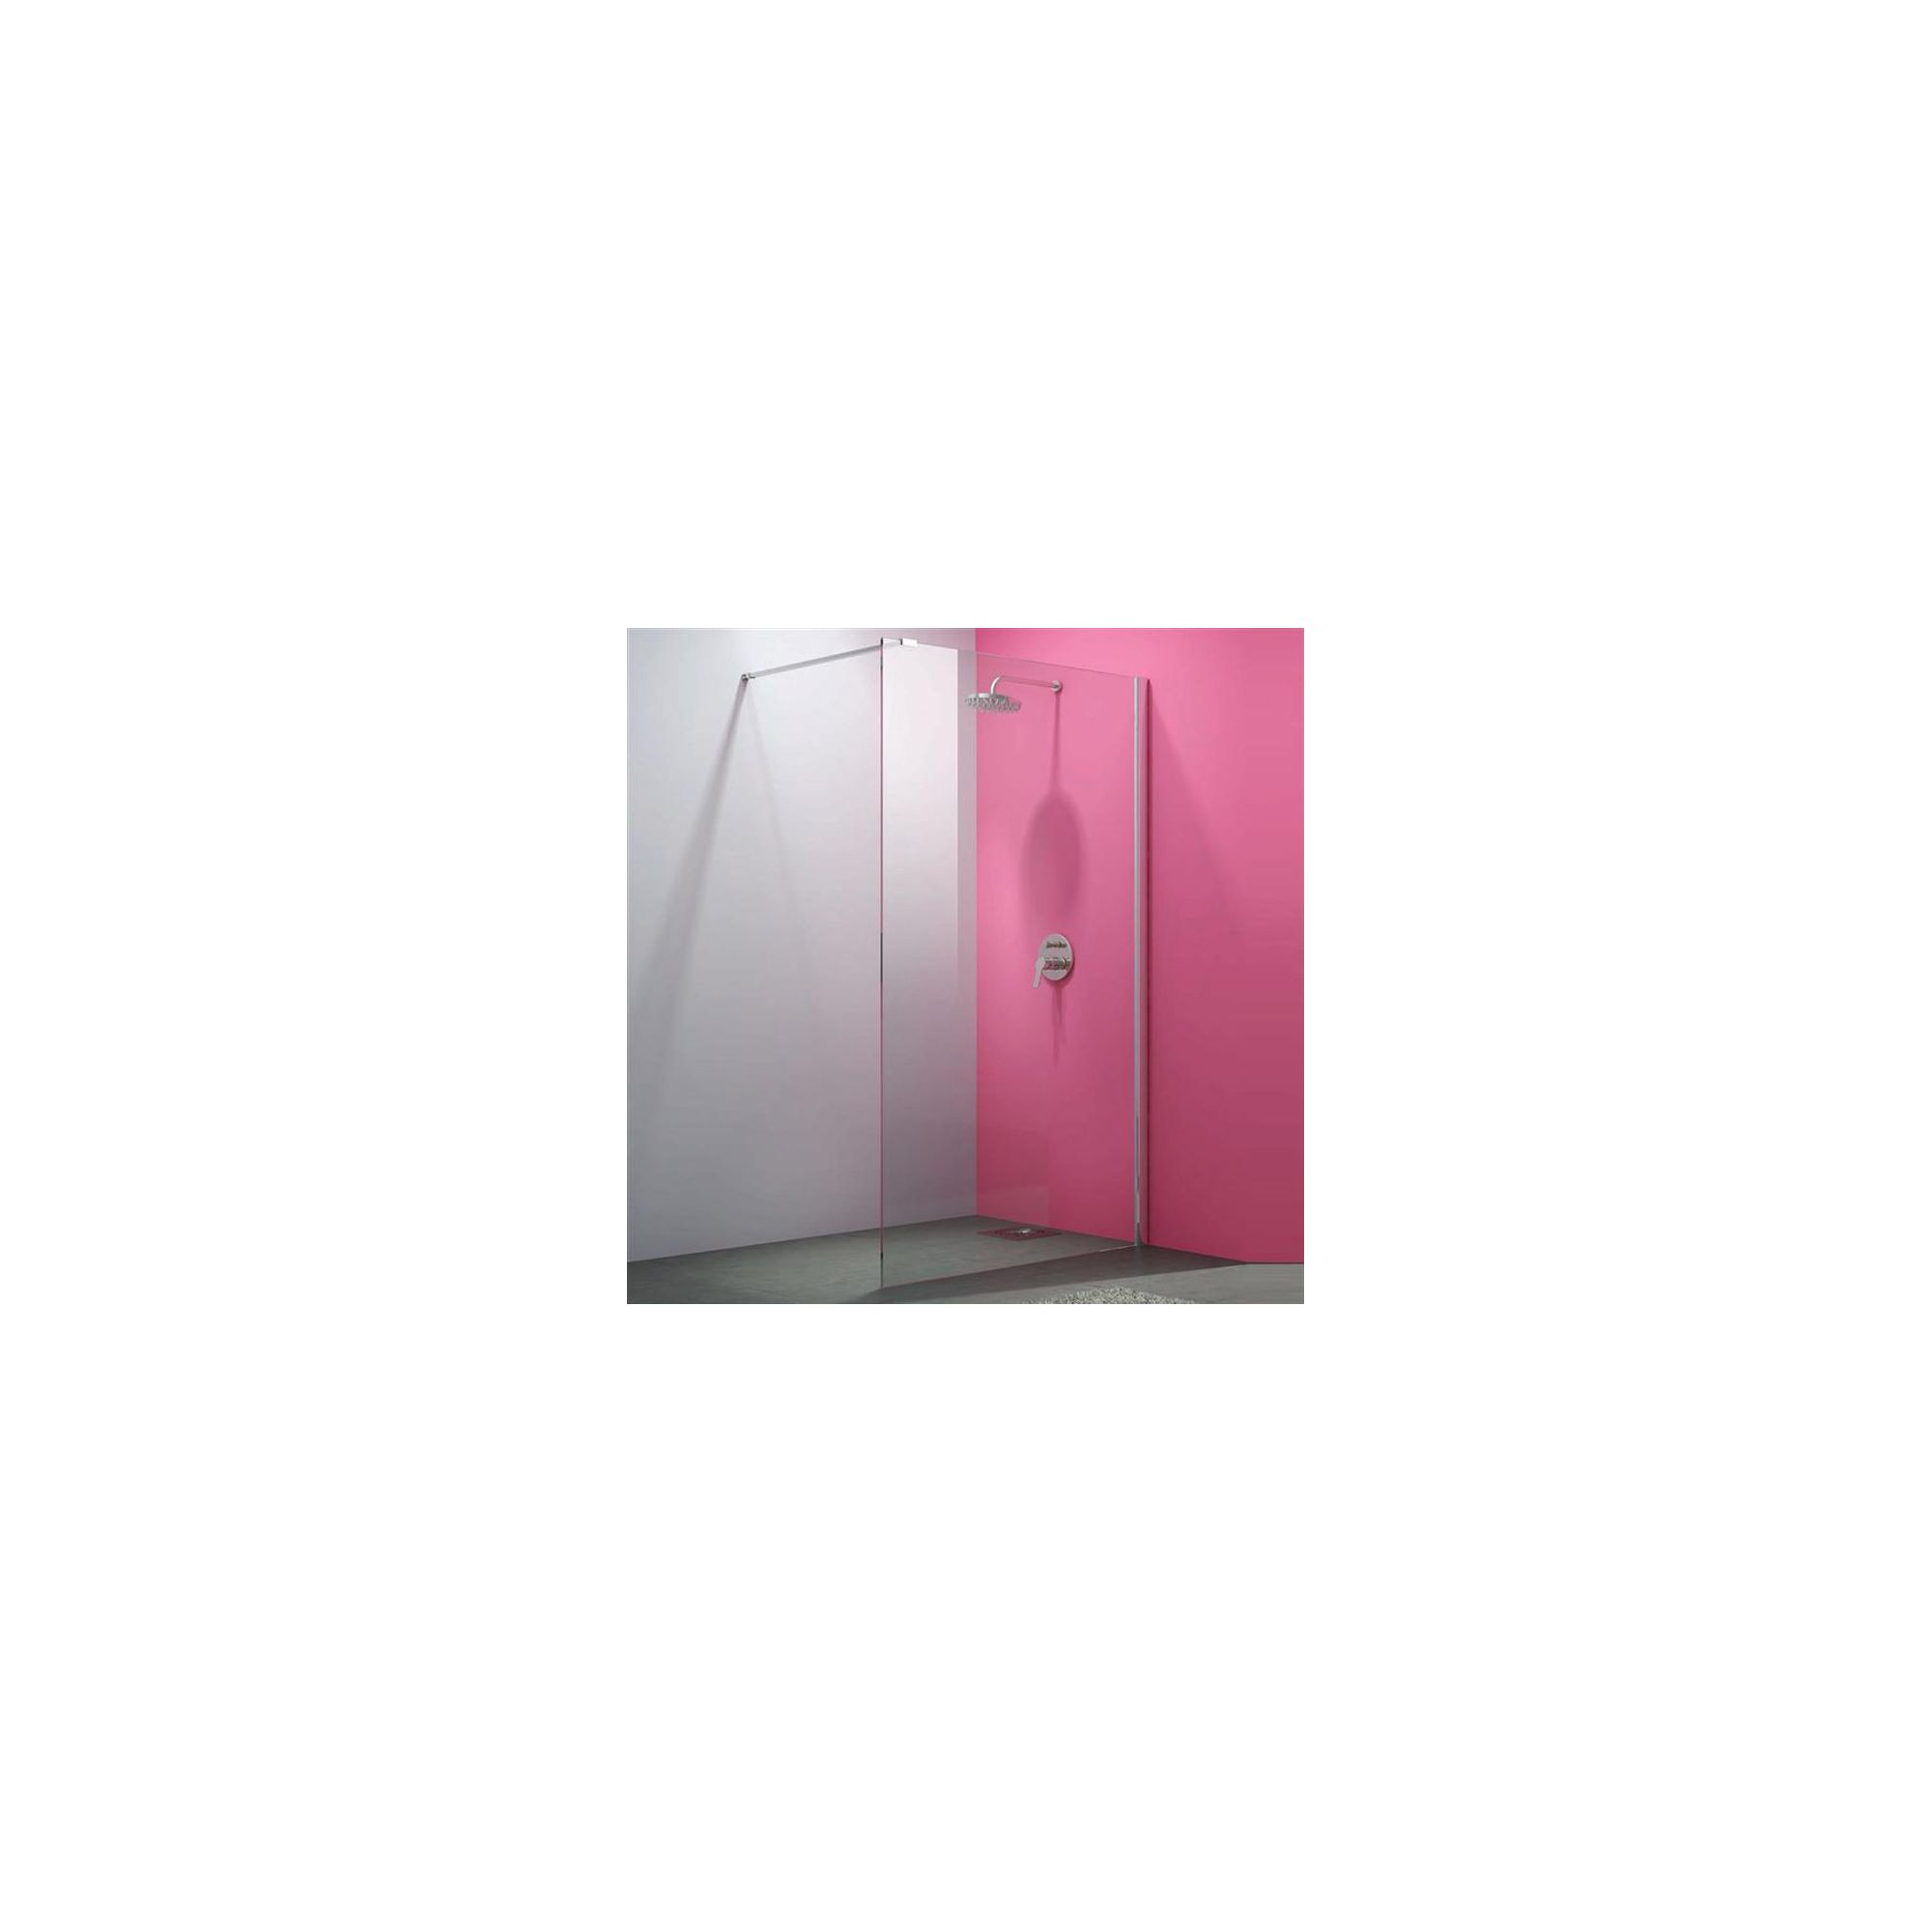 Merlyn Vivid Eight Wet Room Shower Glass Panel 1200mm Wide at Tesco Direct